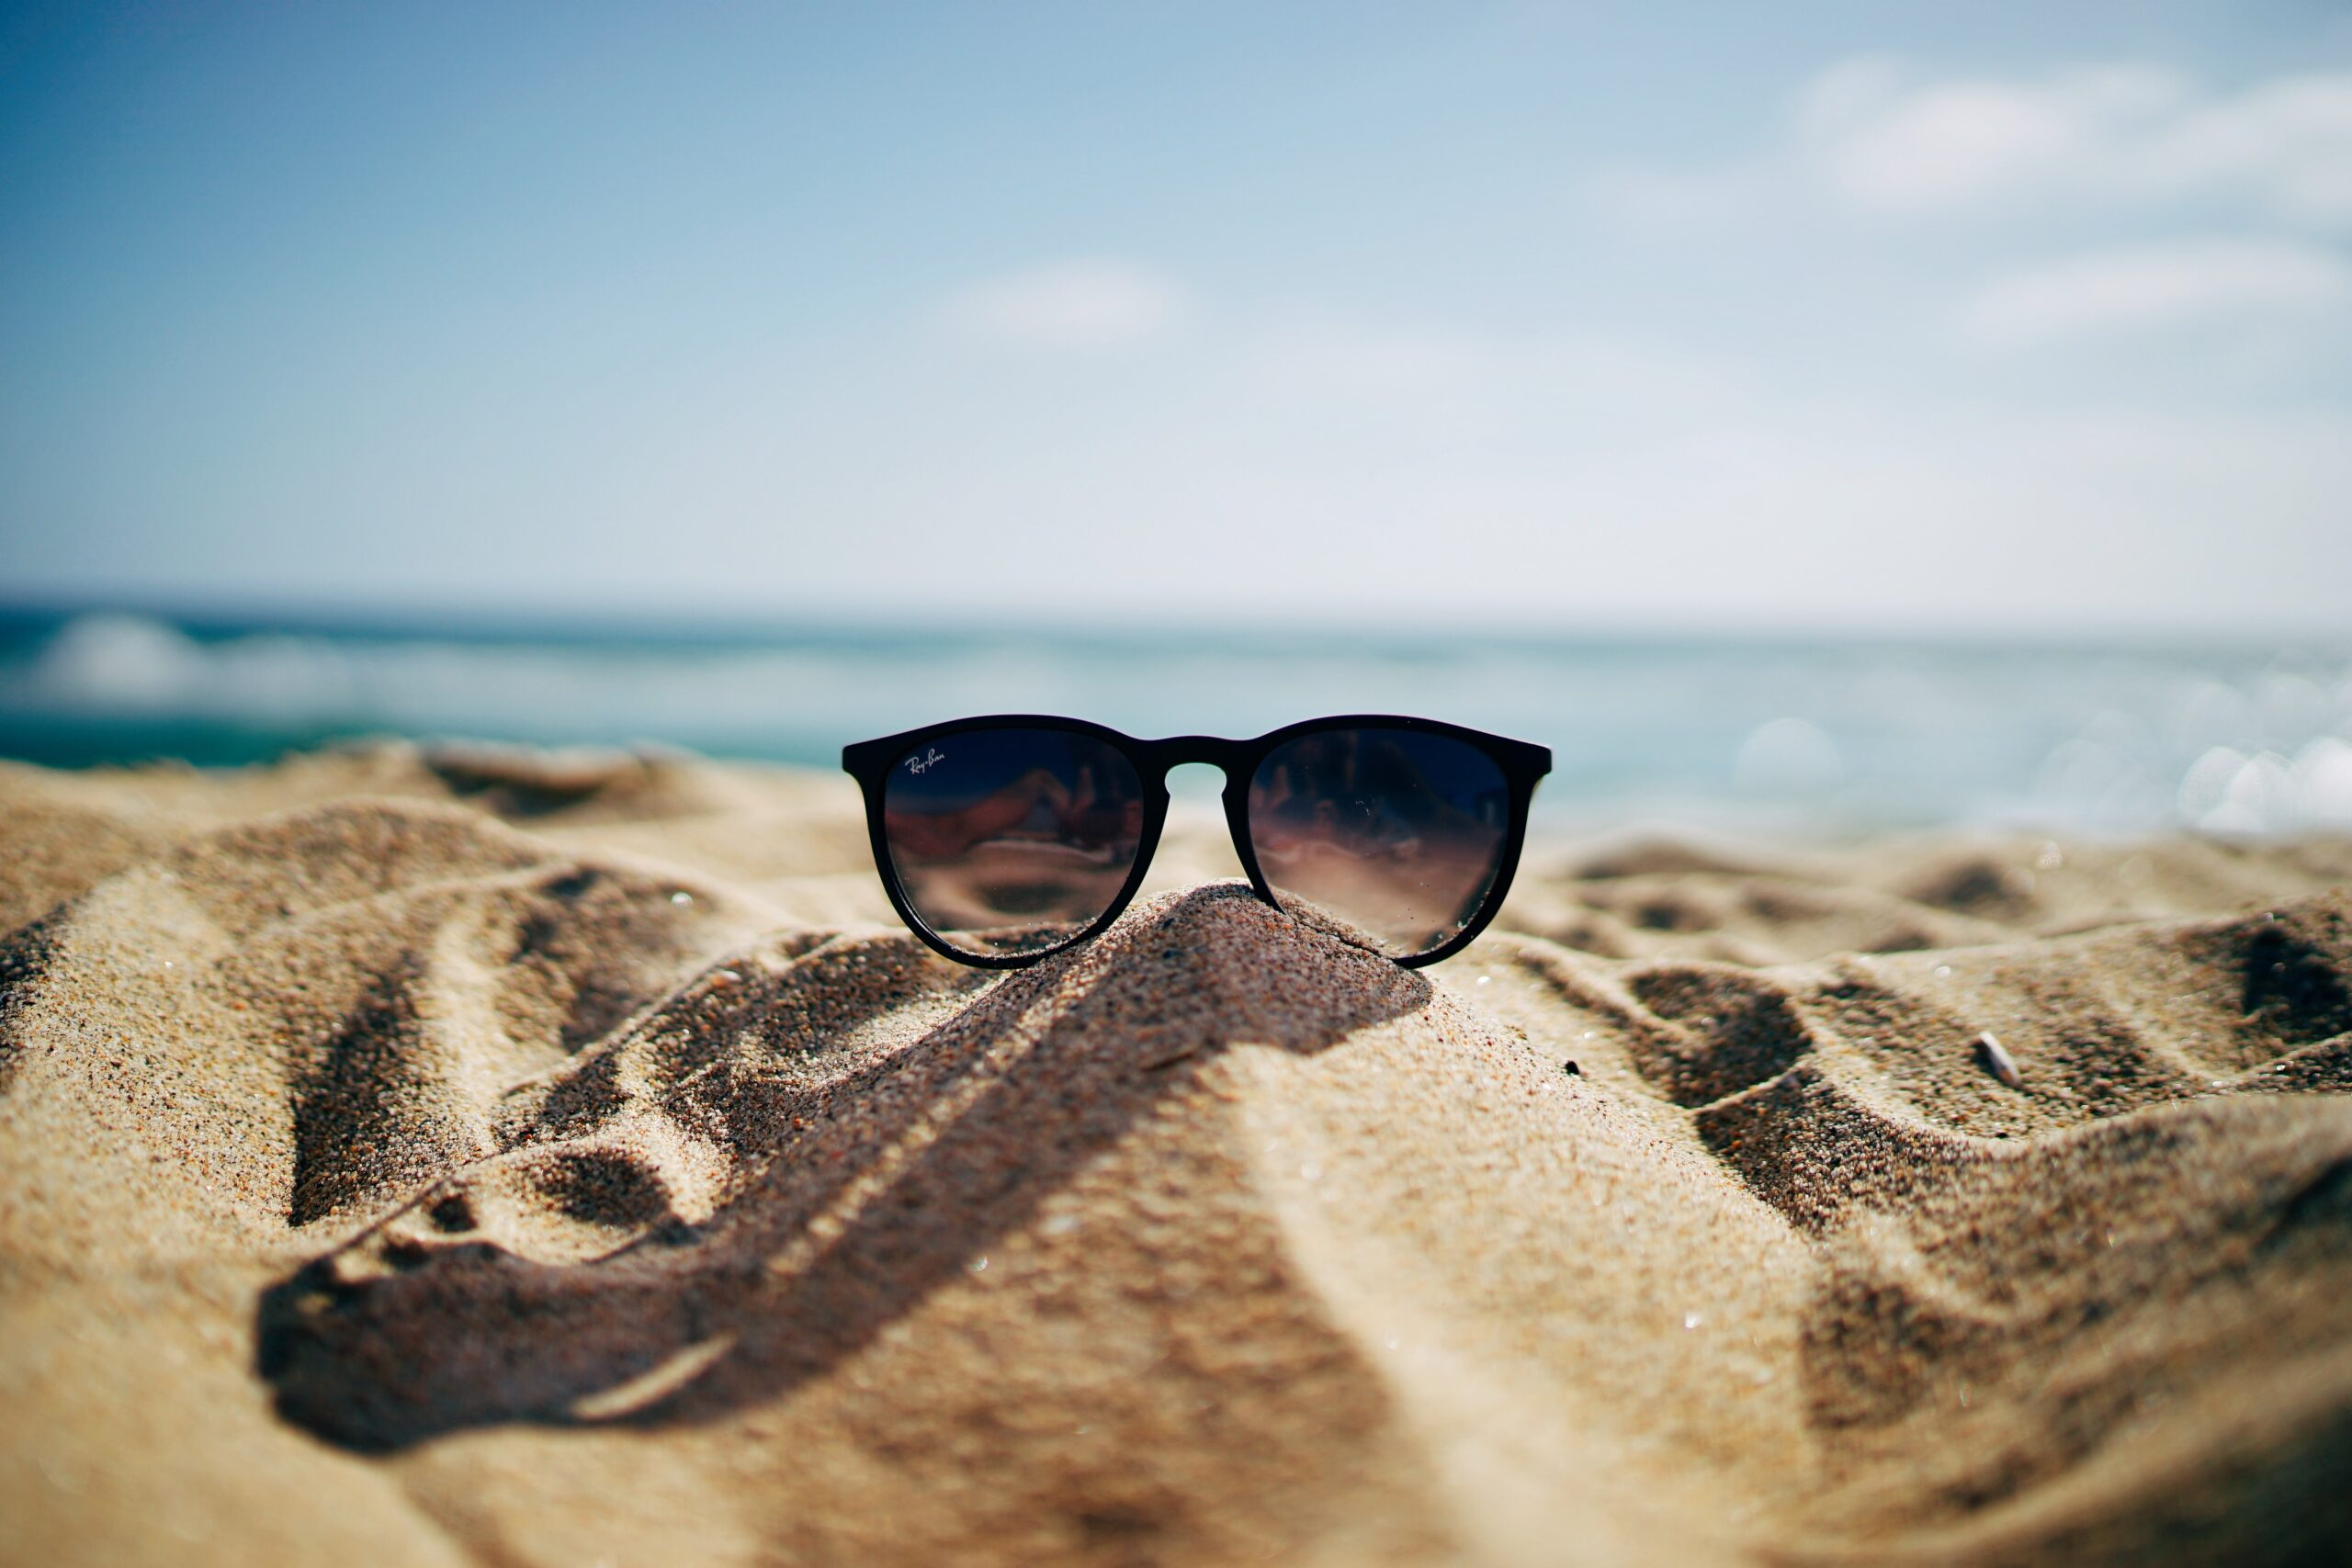 Are You Ready for Revealing Summer Fashions? 6 Simple Ways to Prepare Your Skin